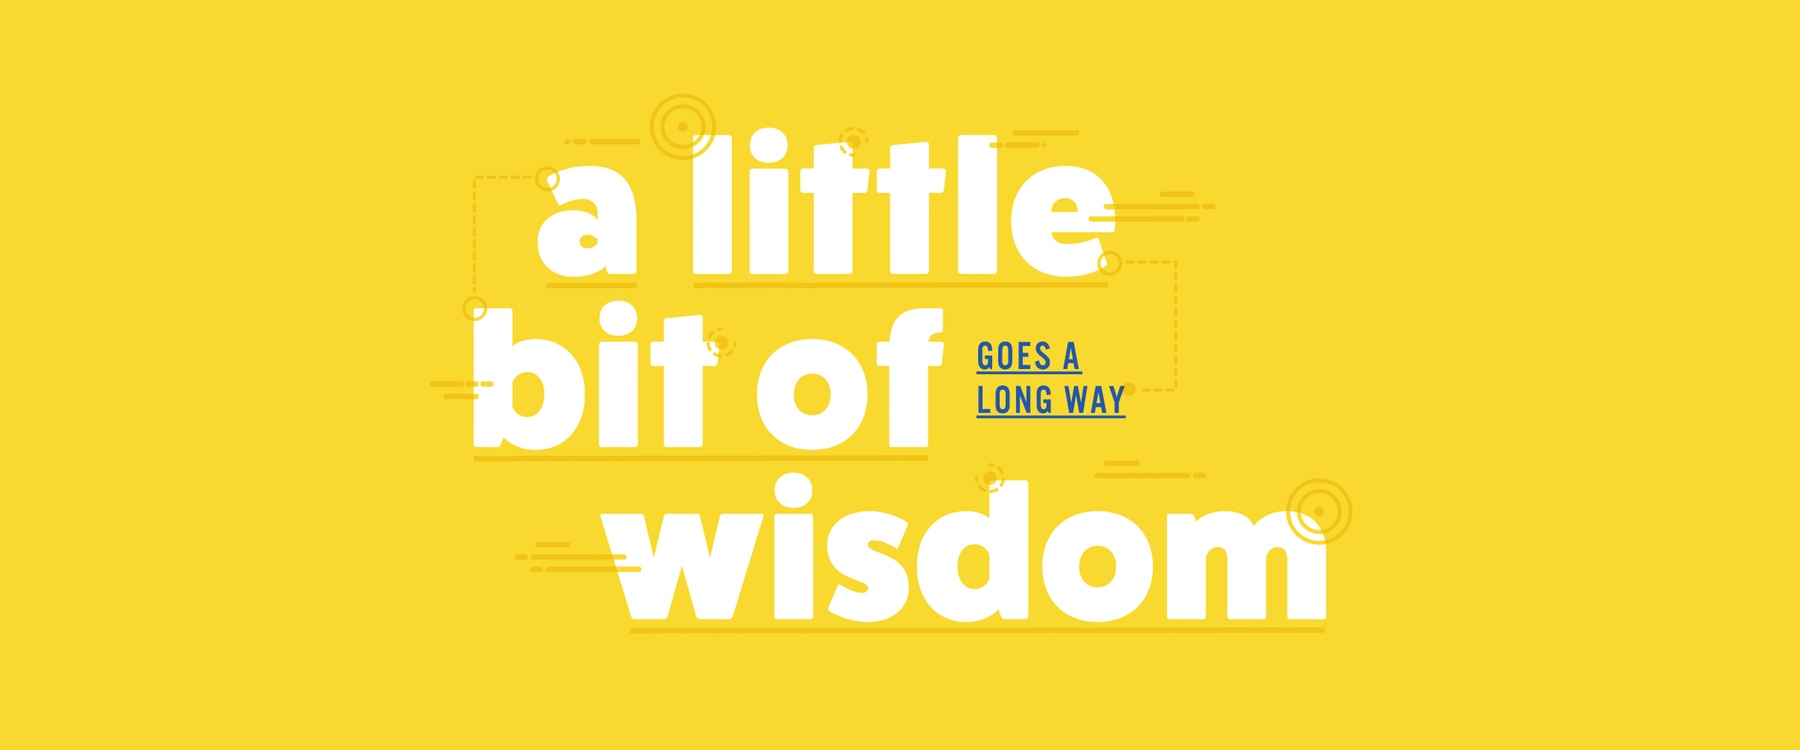 Wisdom SLIDER web writeup